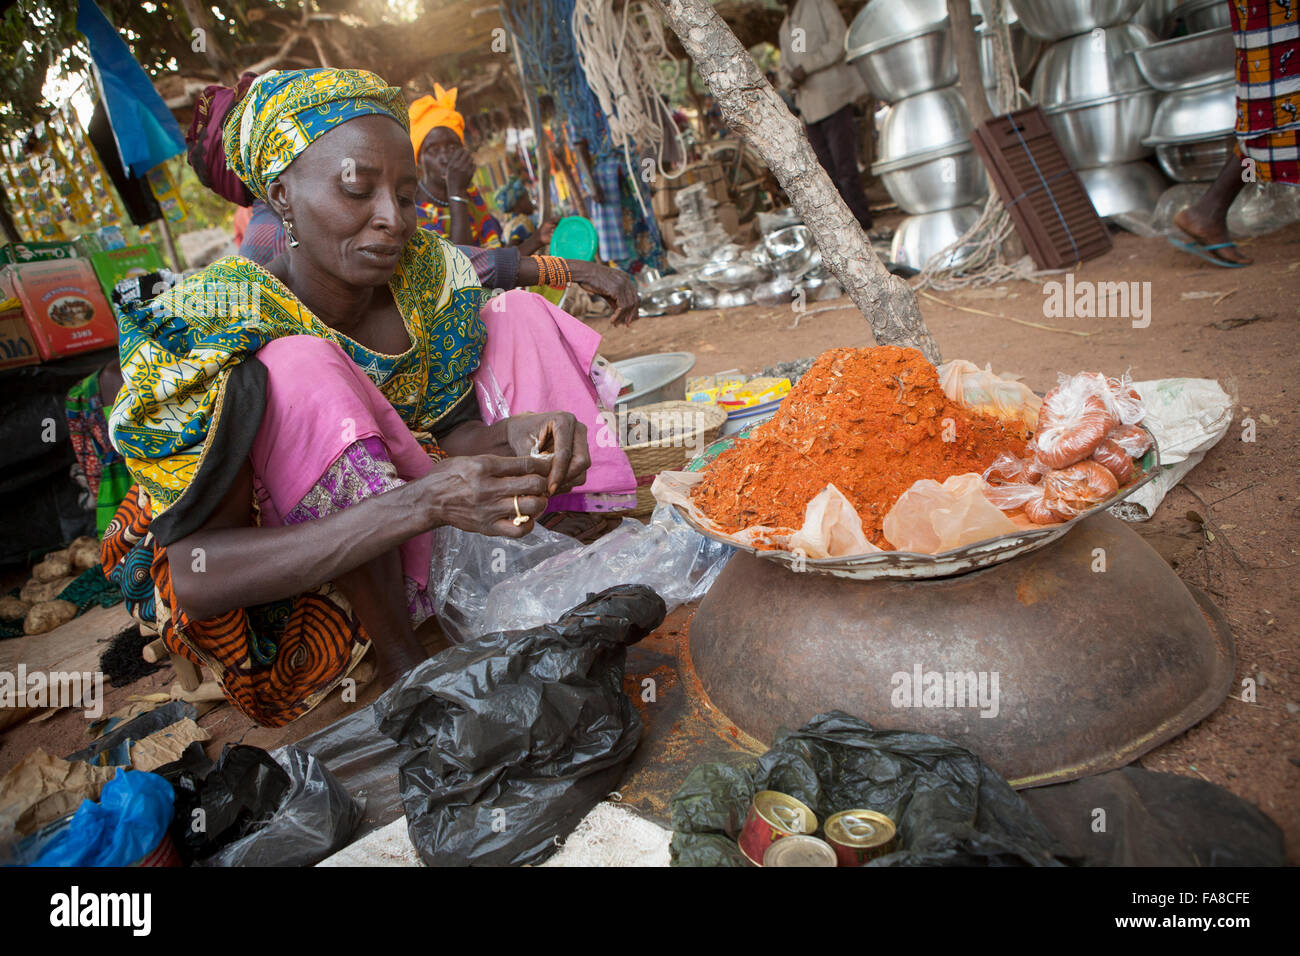 Weekly traditional spice market in Banfora Department, Burkina Faso. - Stock Image